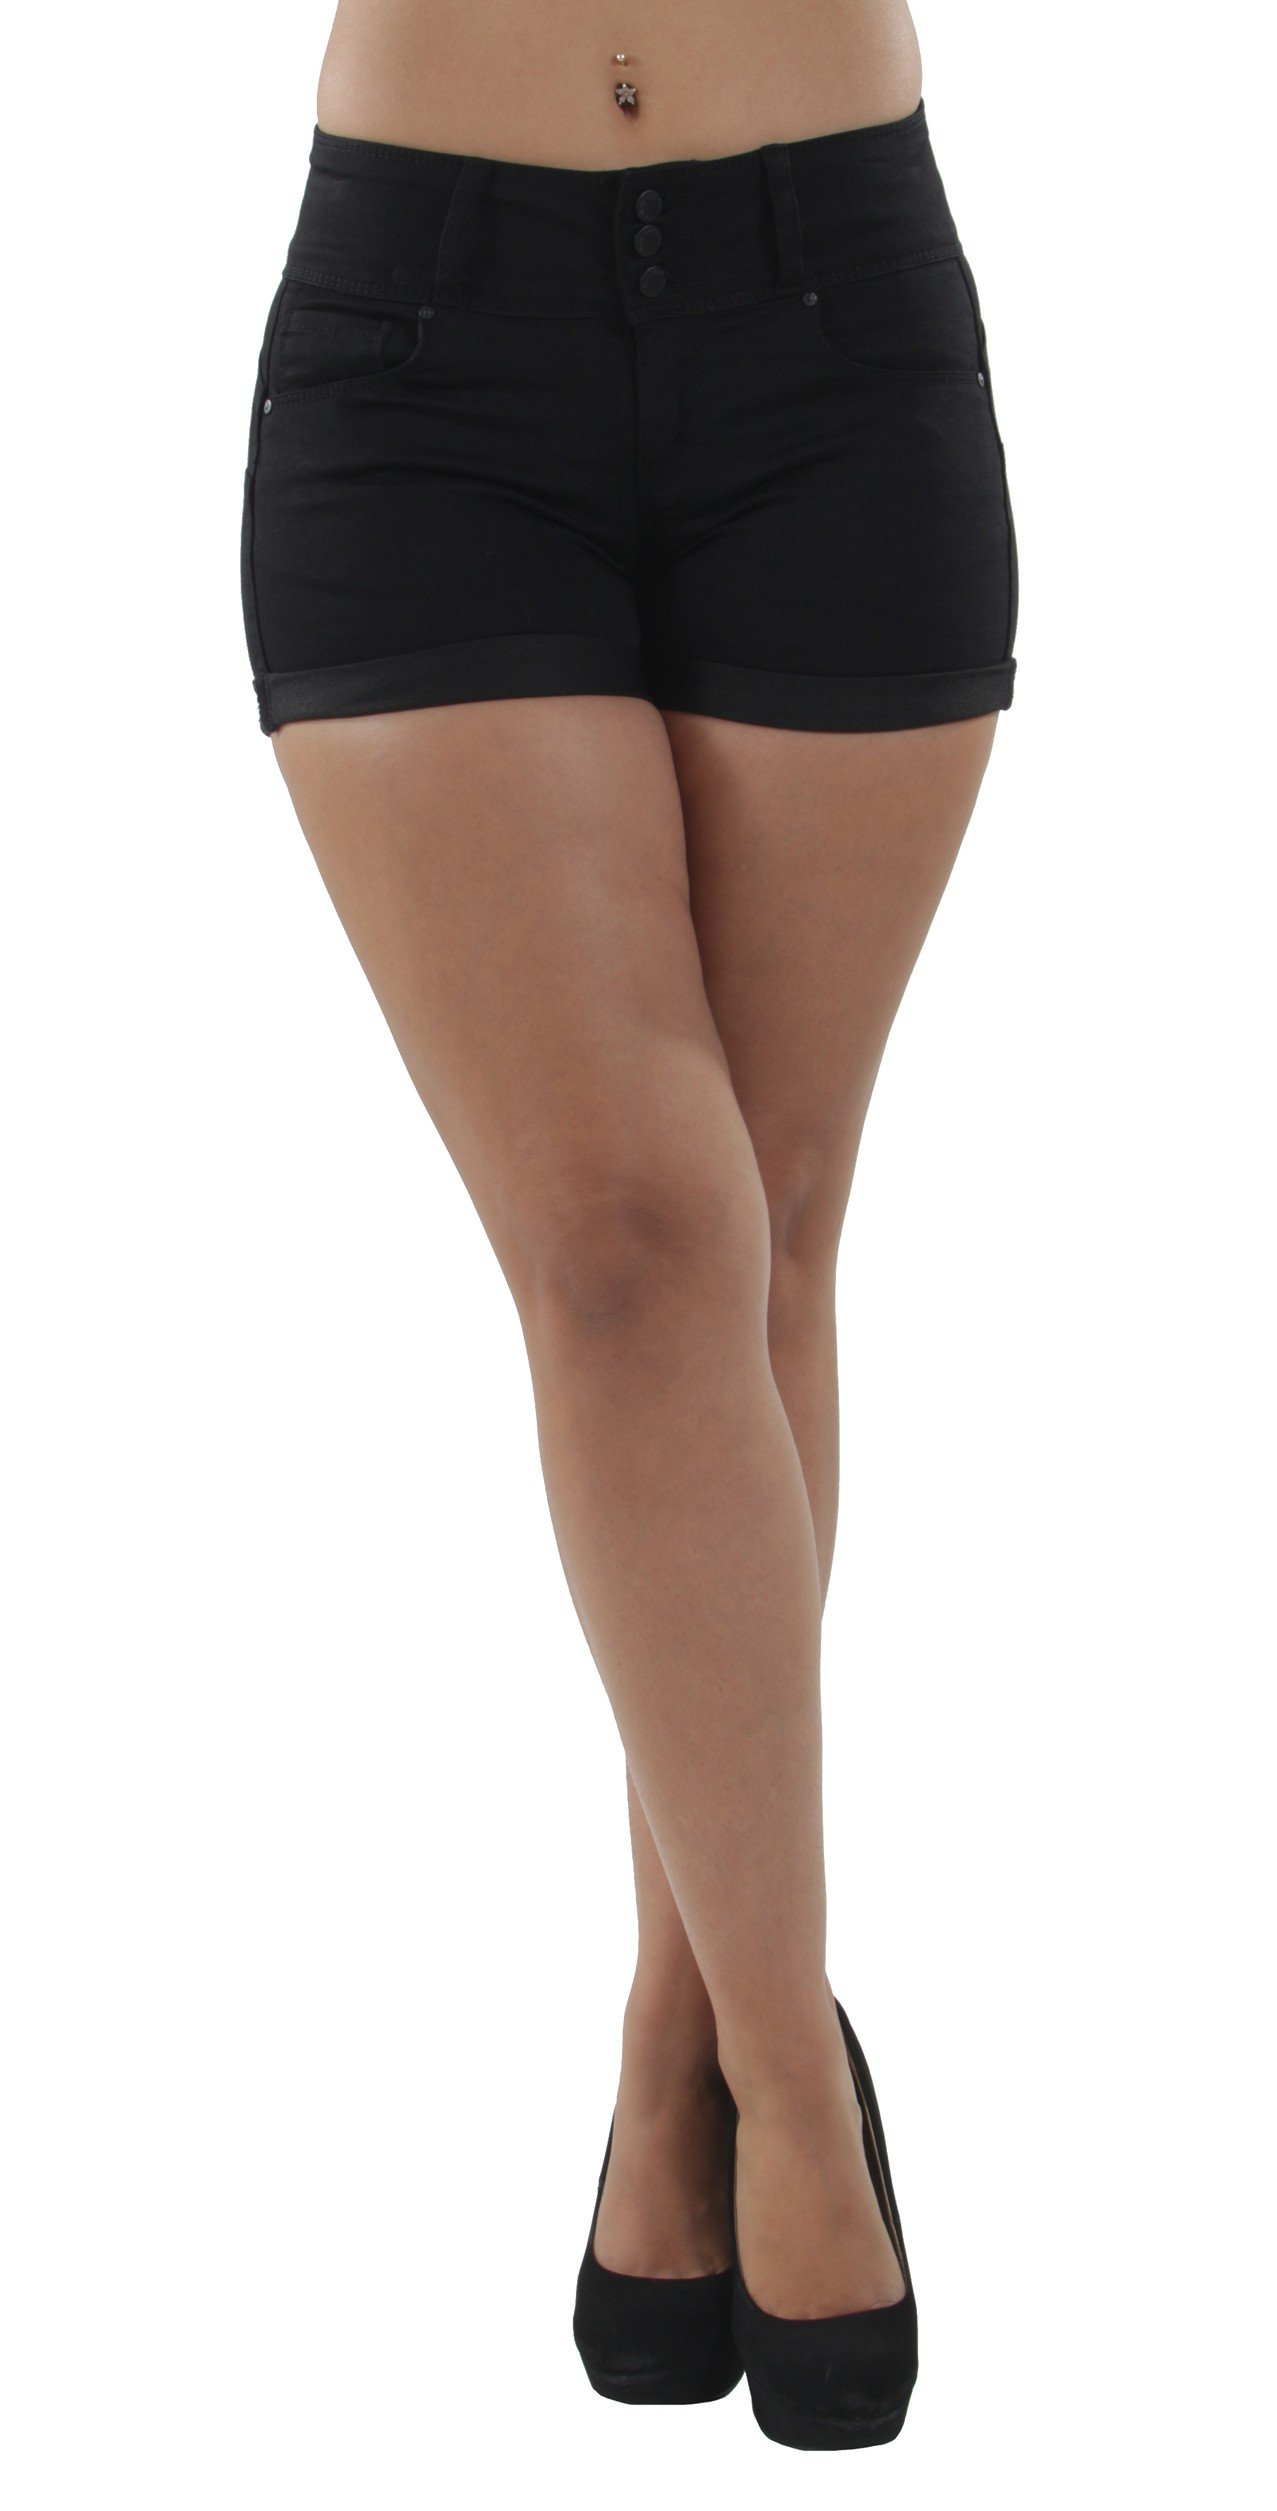 Fashion2Love 90099XL(SH) - Plus Size, Colombian Design, Mid Waist, Butt Lift, Booty Shorts in Black Size 1XL by Fashion2Love (Image #6)